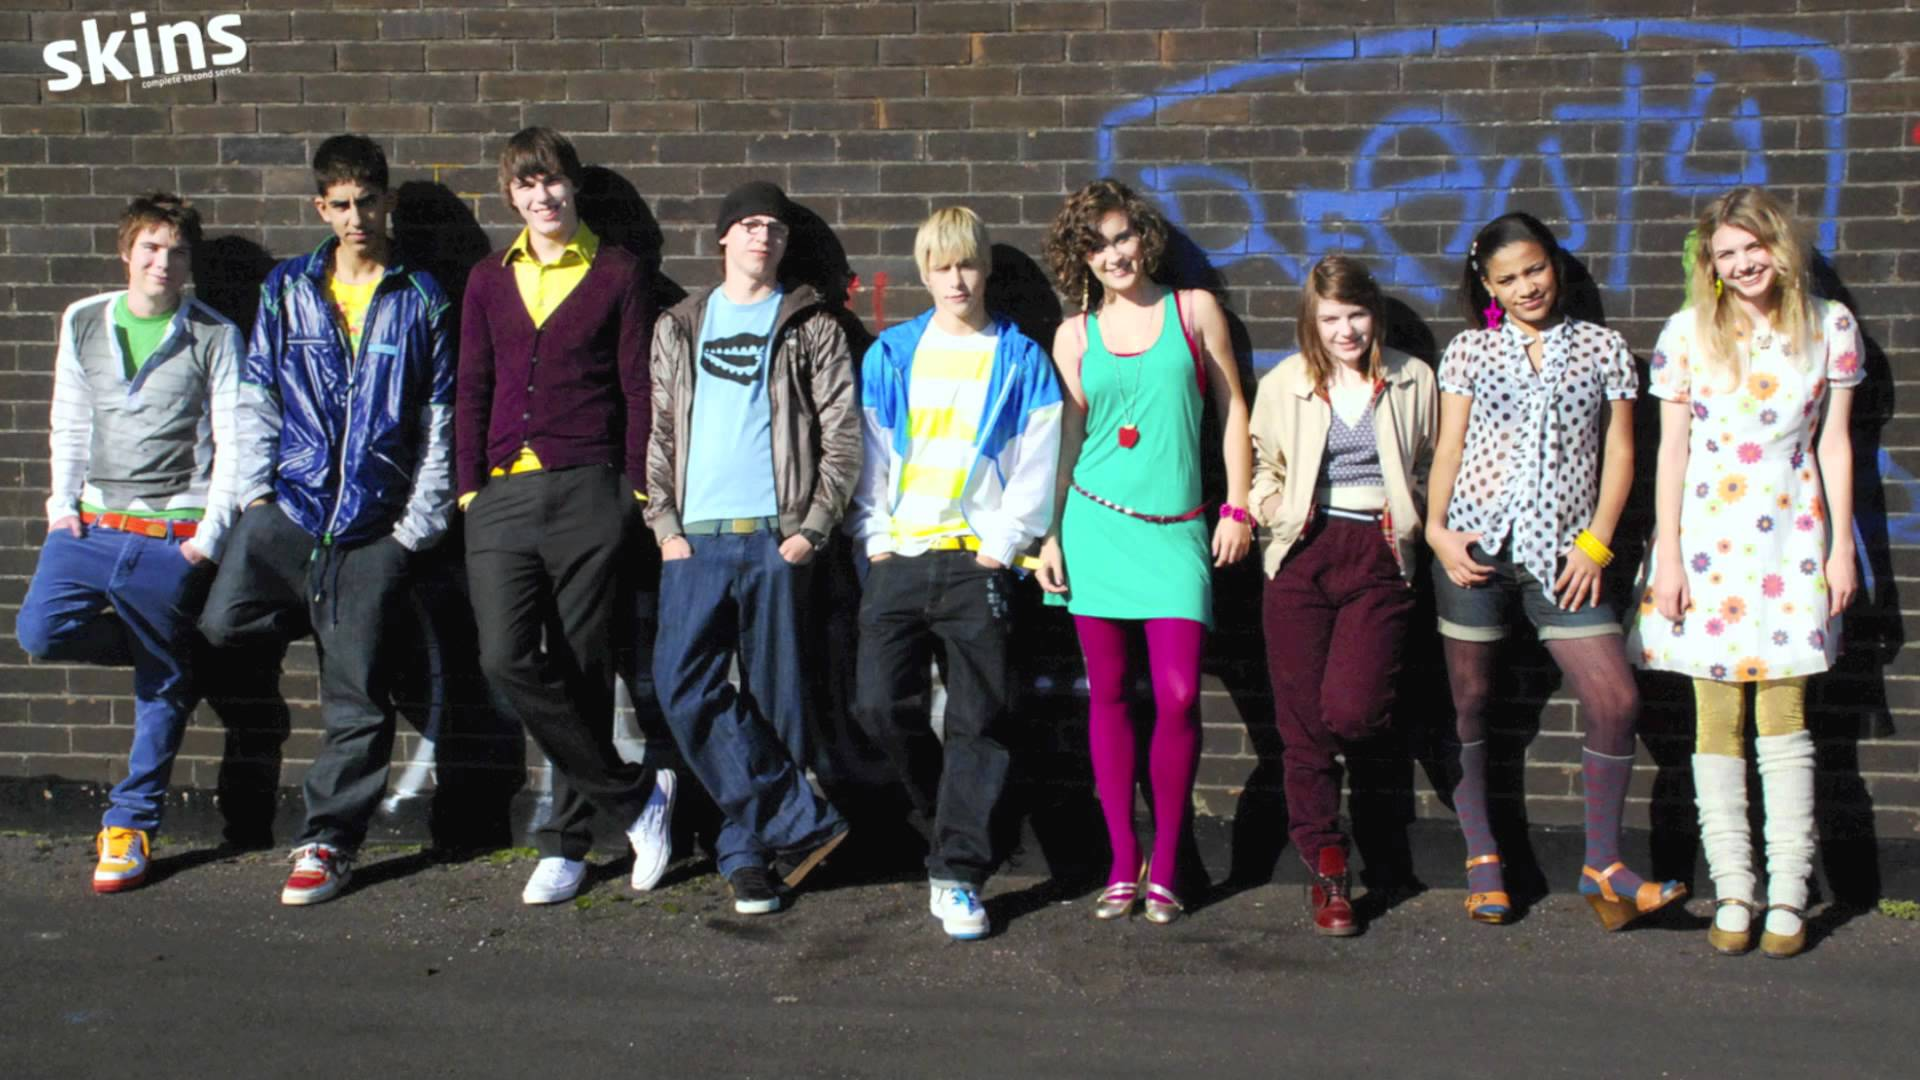 Skins Generation 1: Where are they now?